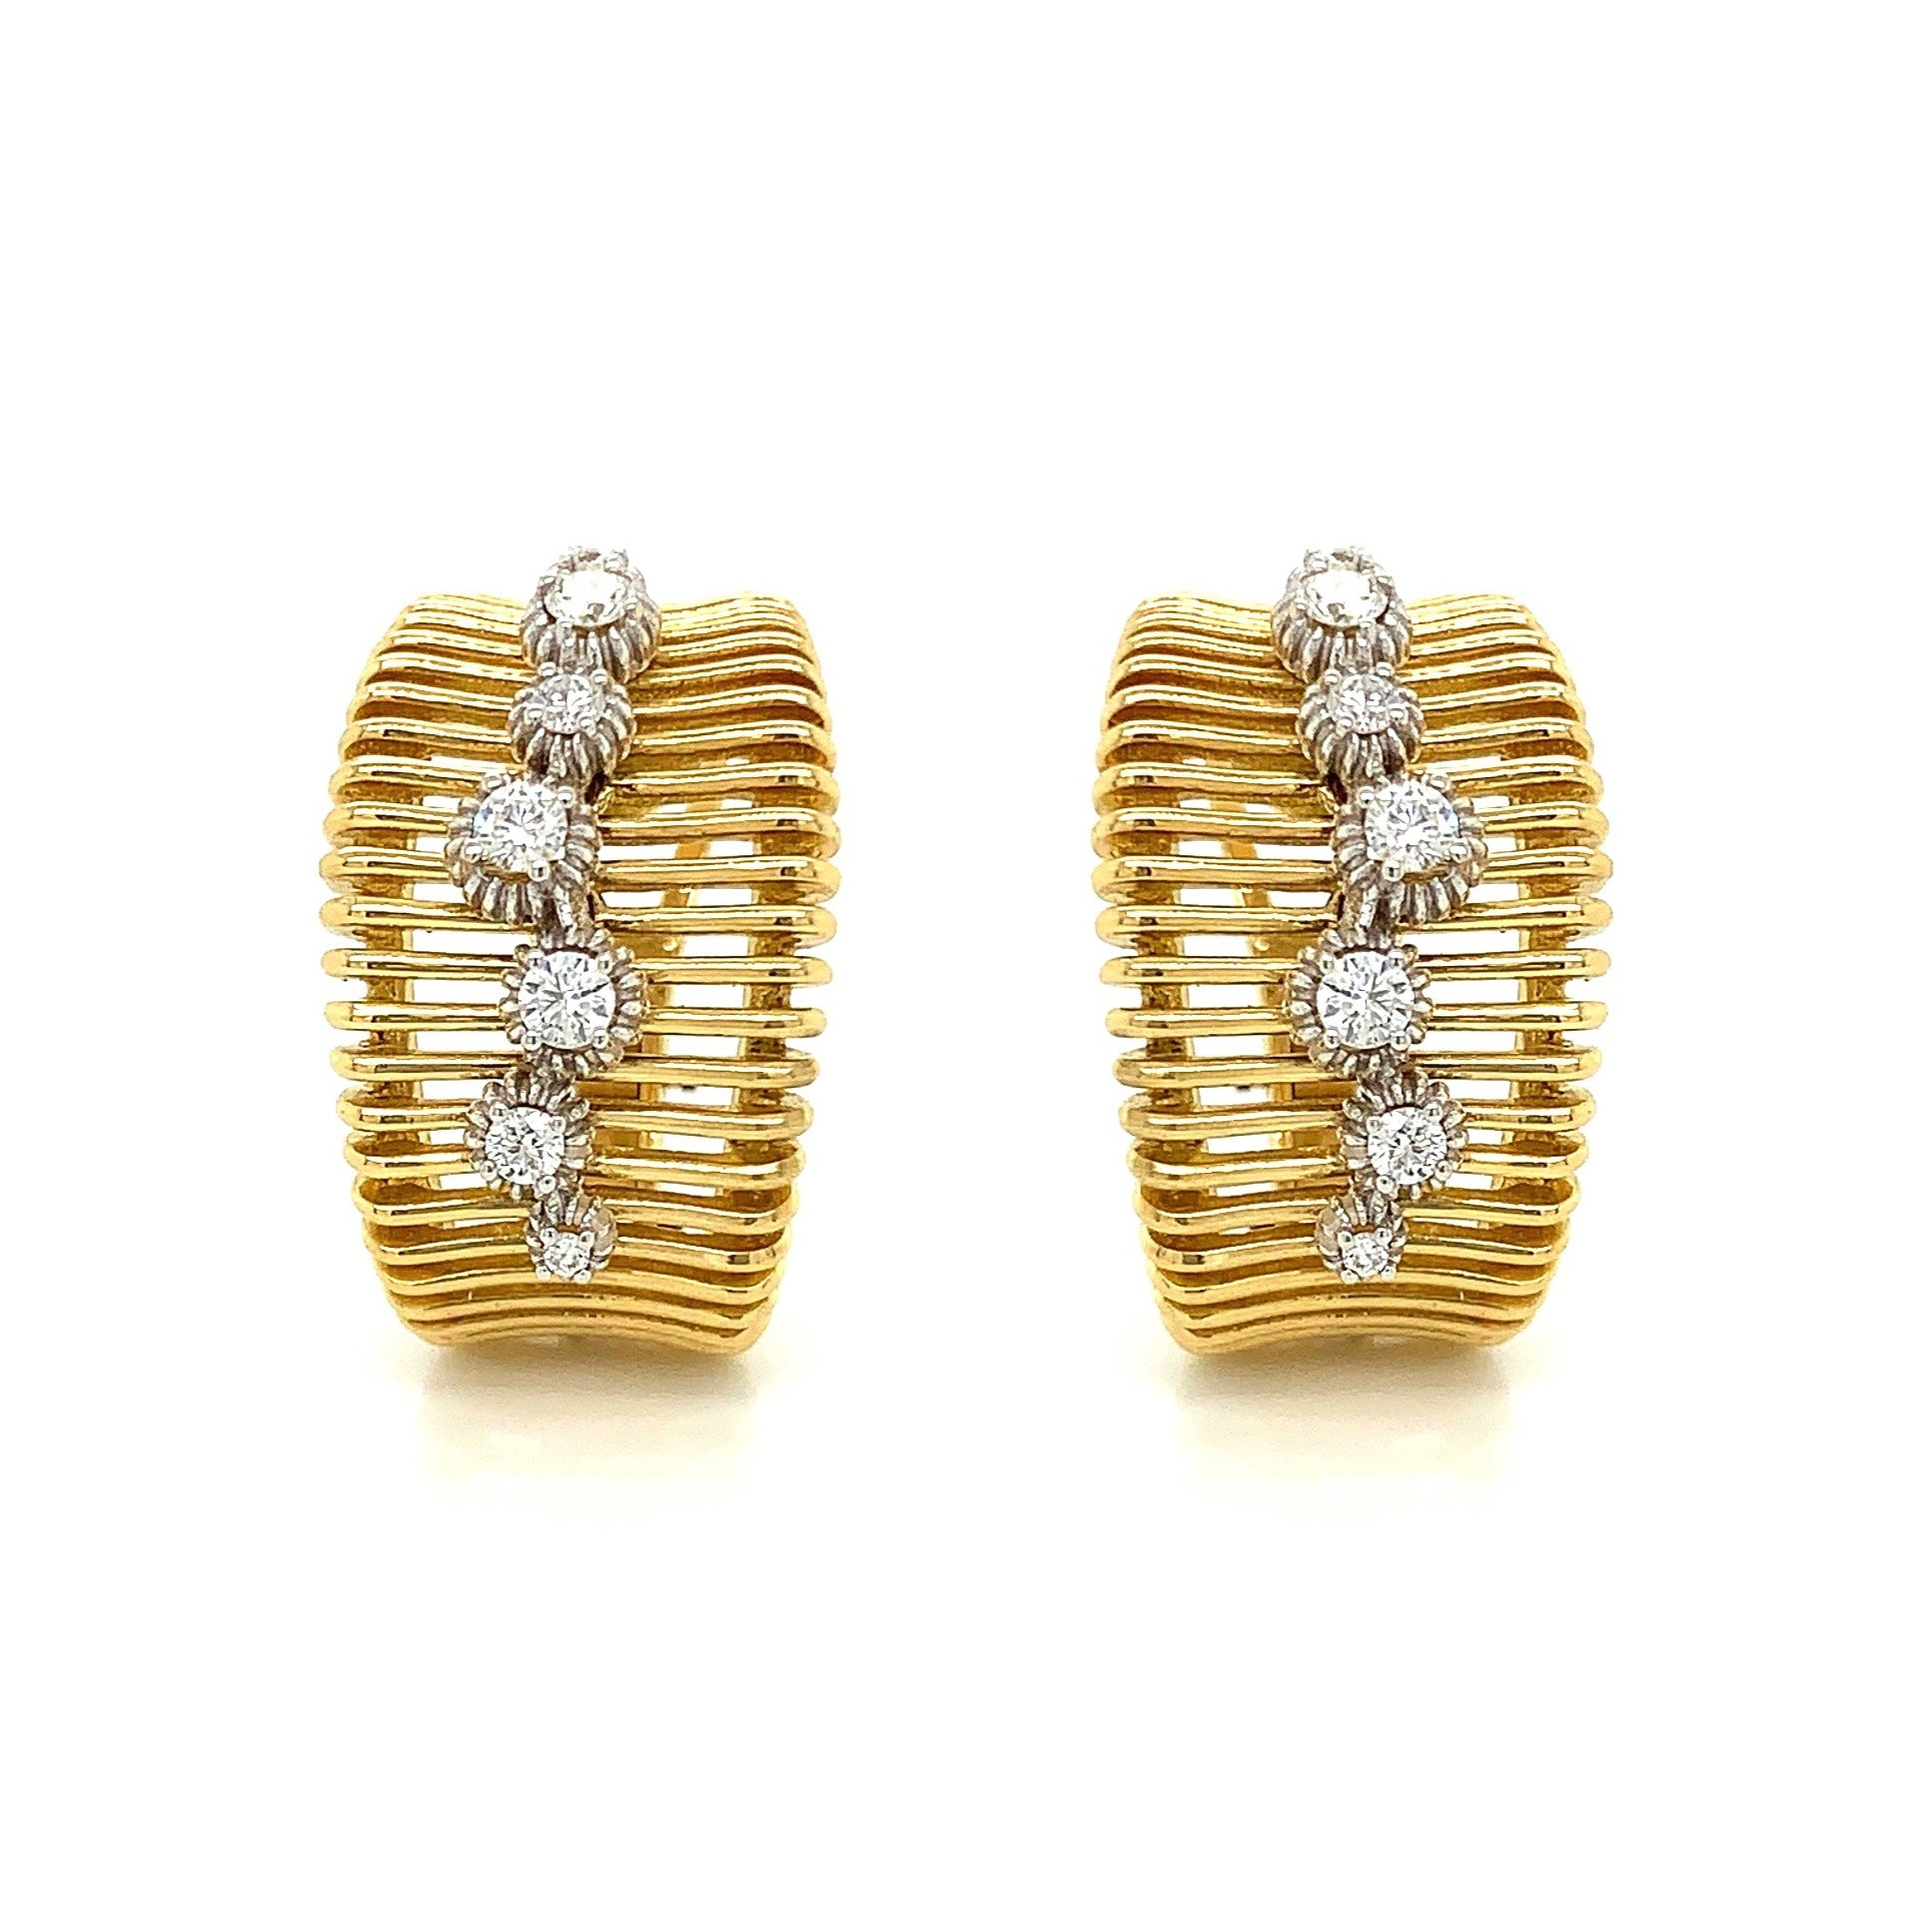 Wide Gold Earring with Diamond Accent